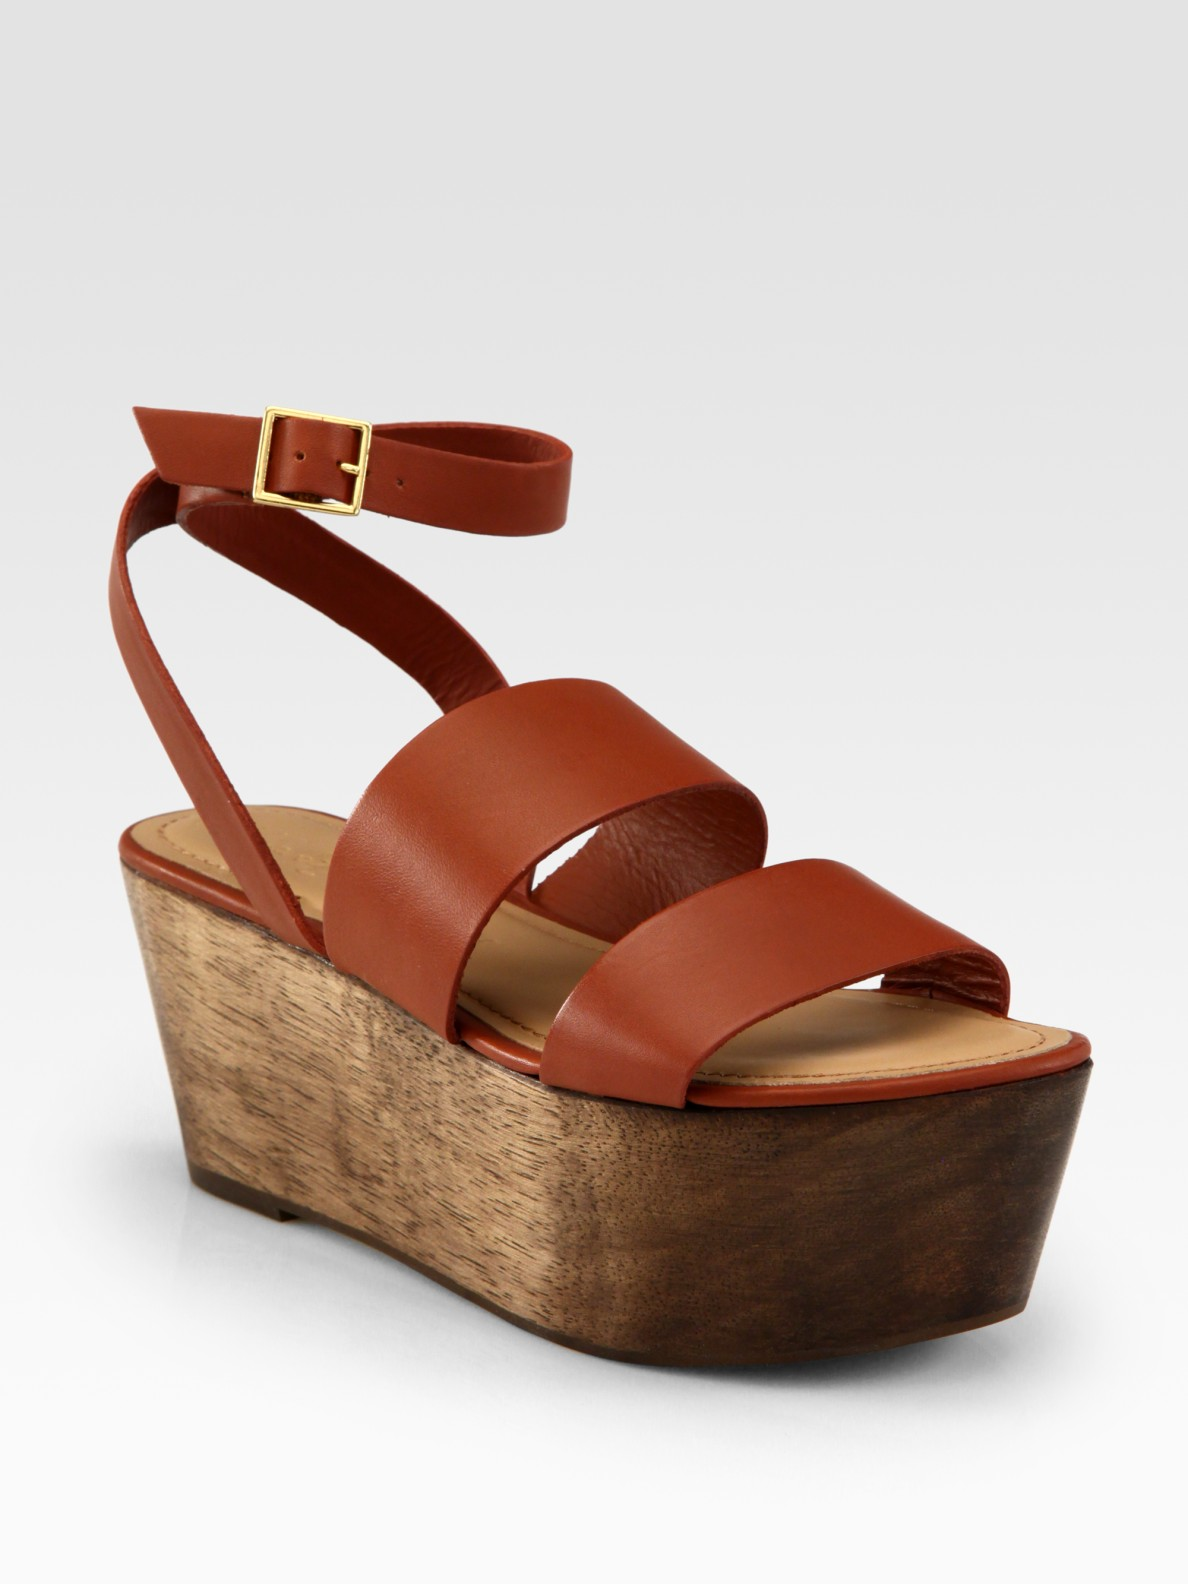 c6c9bed8e254e Elizabeth and James Brown Leather & Wood Platform Sandals